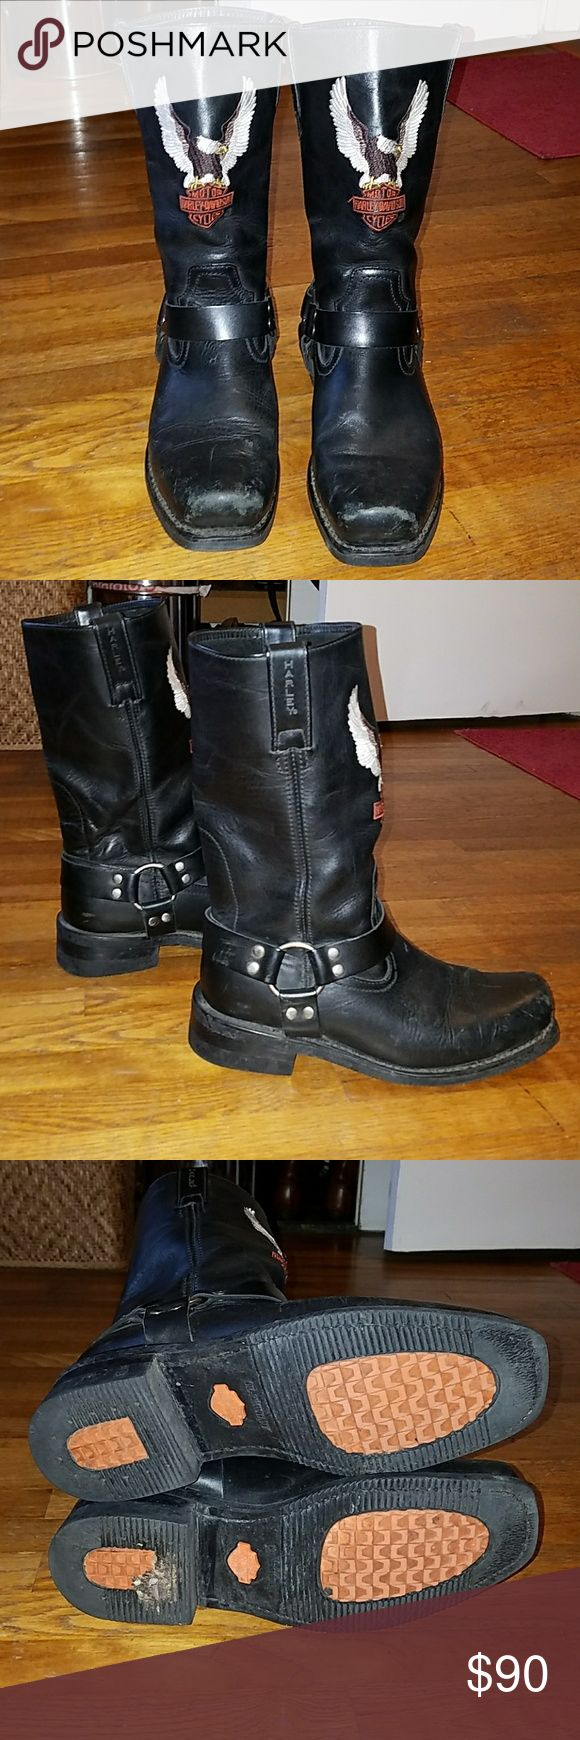 Harley Davidson Motorcycle Boots Excellent used condition Harley boots with years of sole left. Leather is still stiff with light scuff marks on toe part. Style 91002 Harley-Davidson Shoes Boots